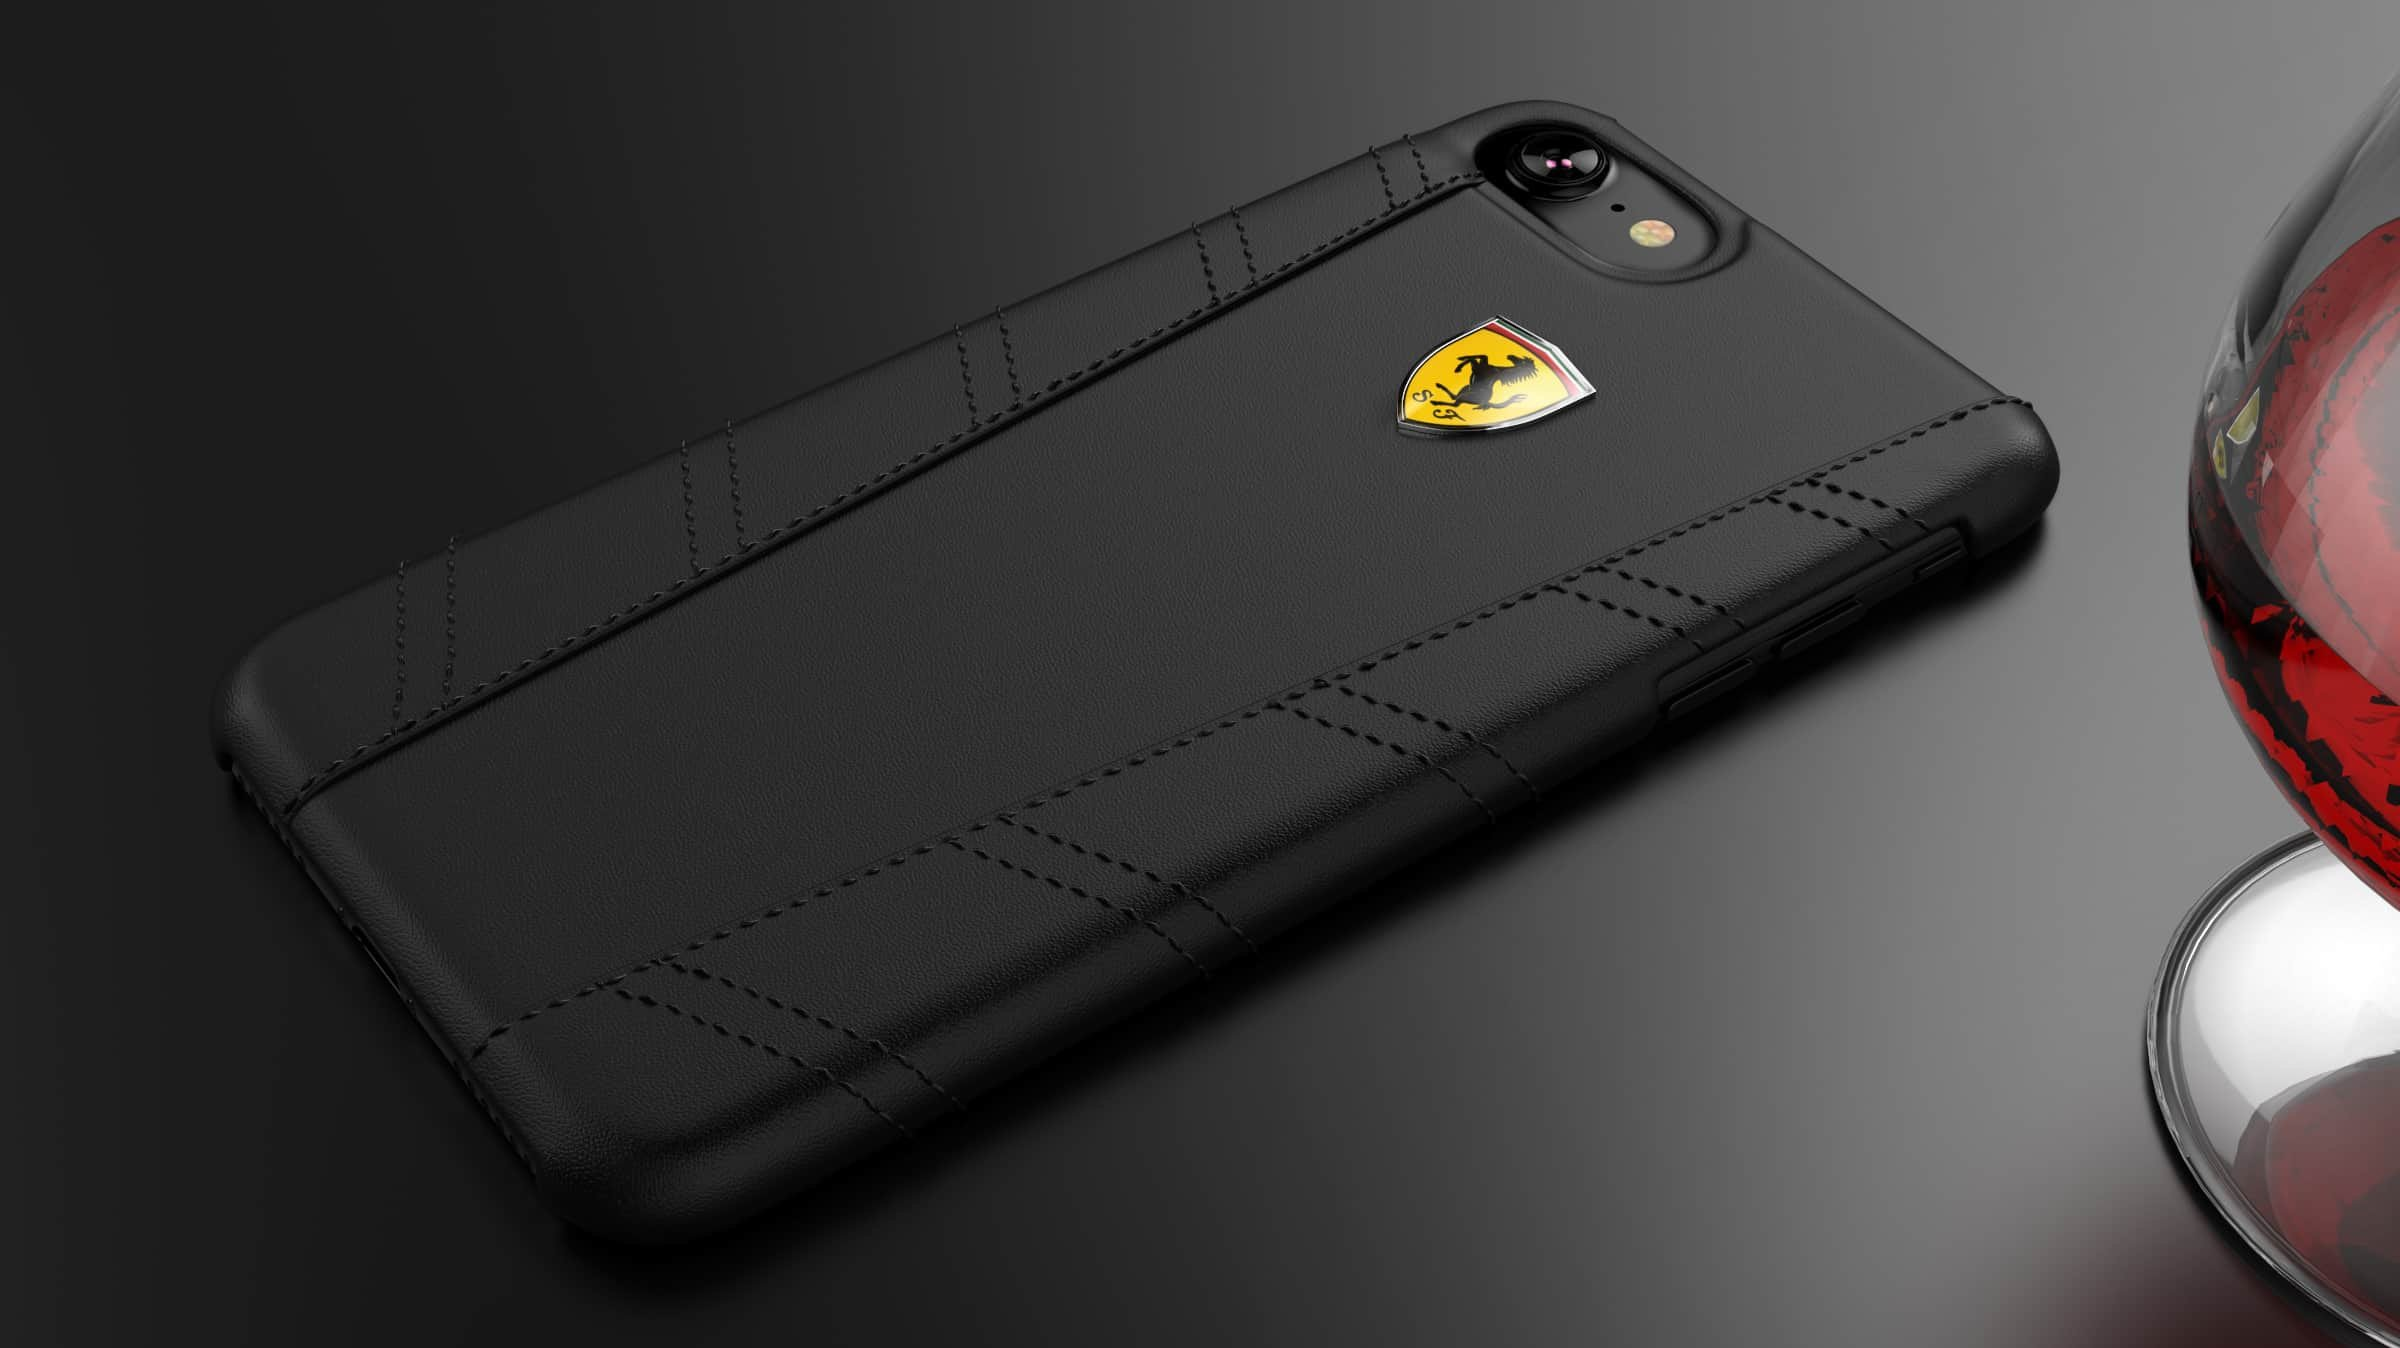 watch 67b83 ee1f9 Ferrari ® Apple iPhone 8 Plus GTR EDITION Leather Stitched Dual-Material  Leather Back Cover